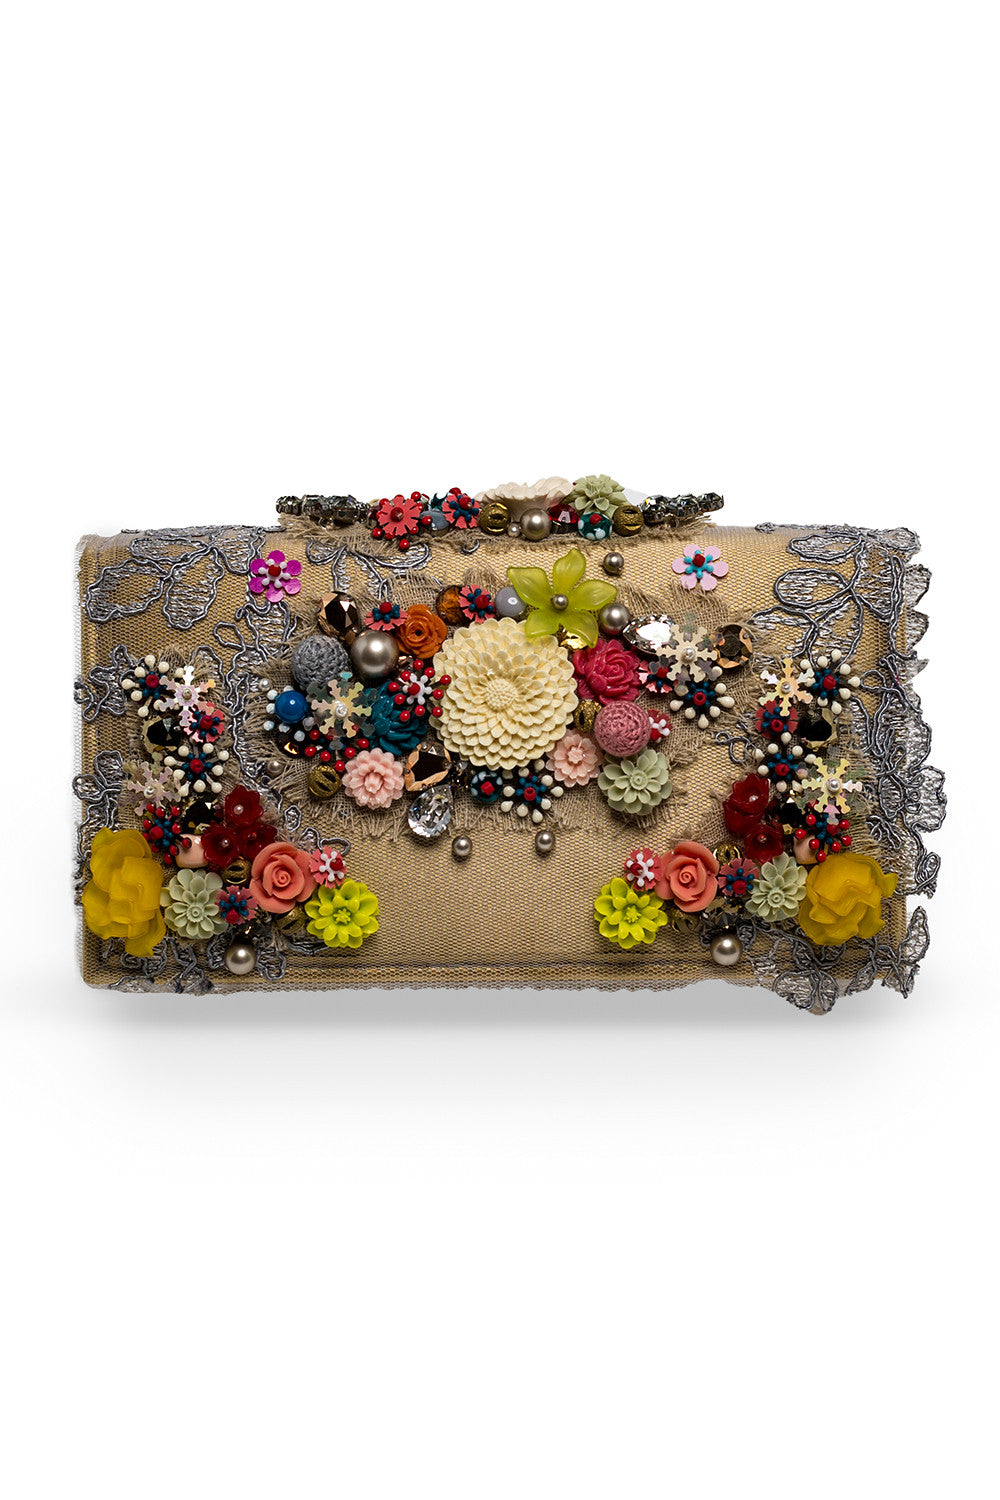 HIMIG Clutch in Multi